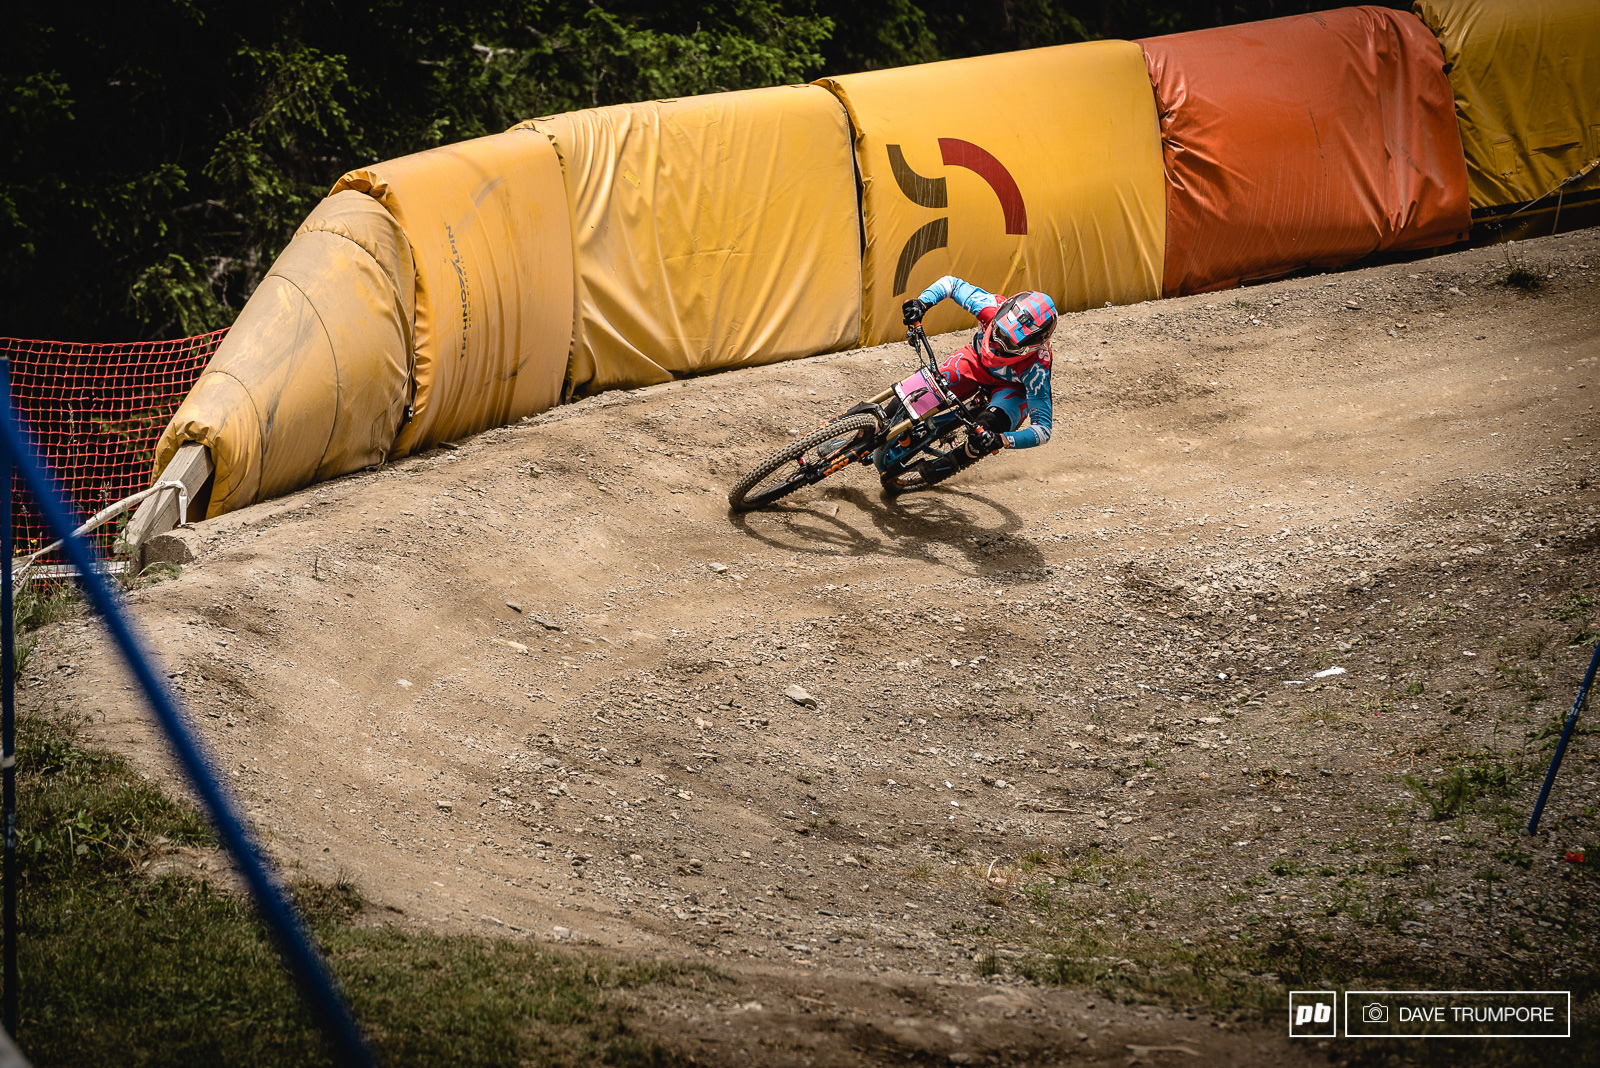 Fastest qualifier Tahnee Seagrave was close at every split and came just 0.70 away from ending Atherton s winning streak.